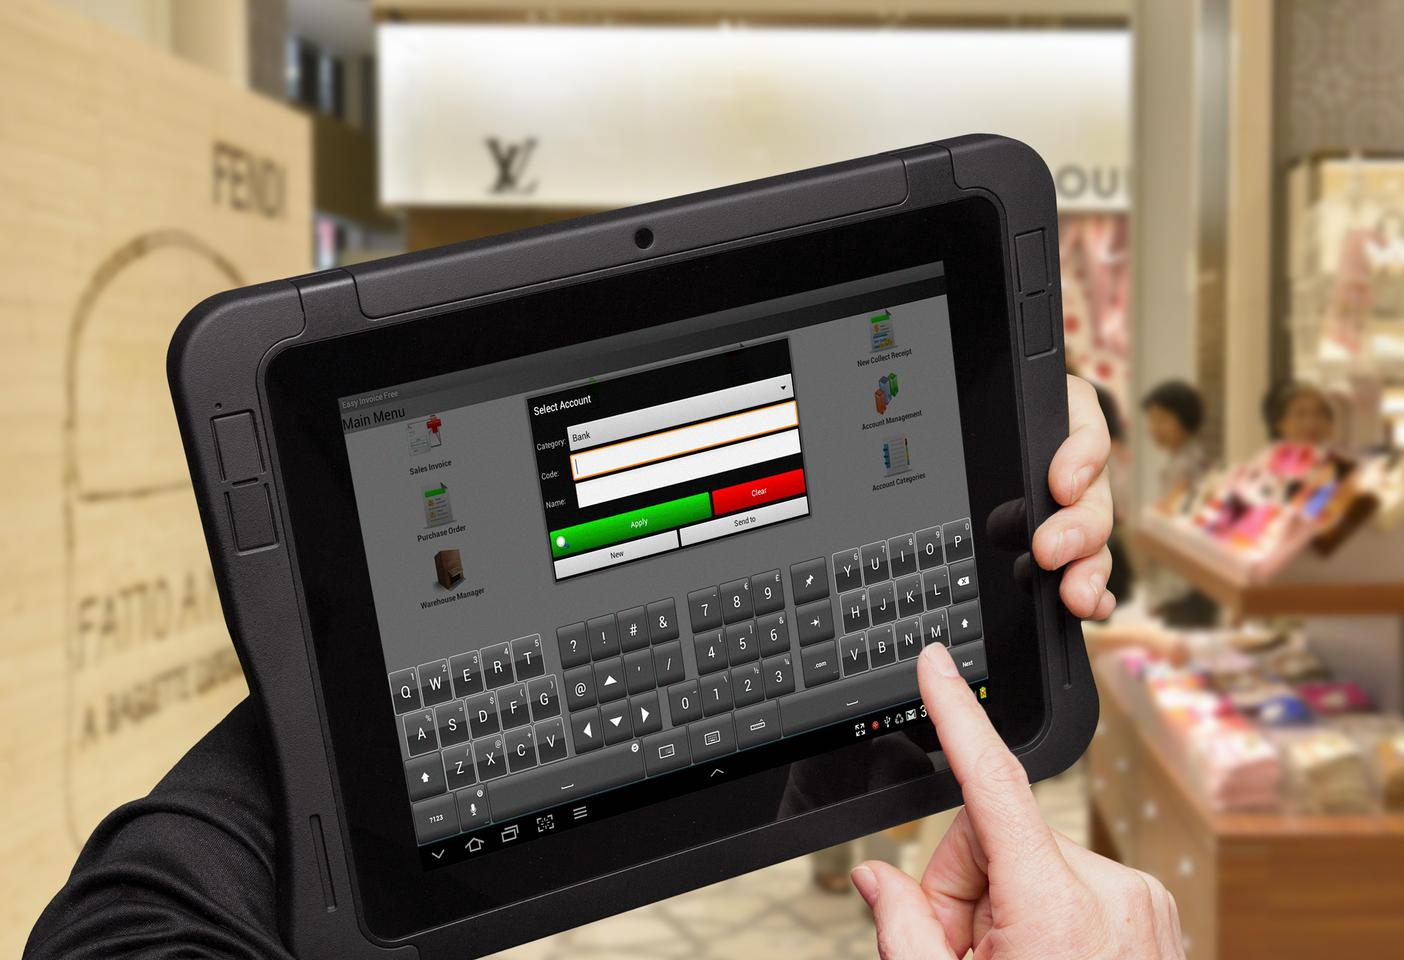 The Crossfire Pro modular business tablet from Entegra Technologies